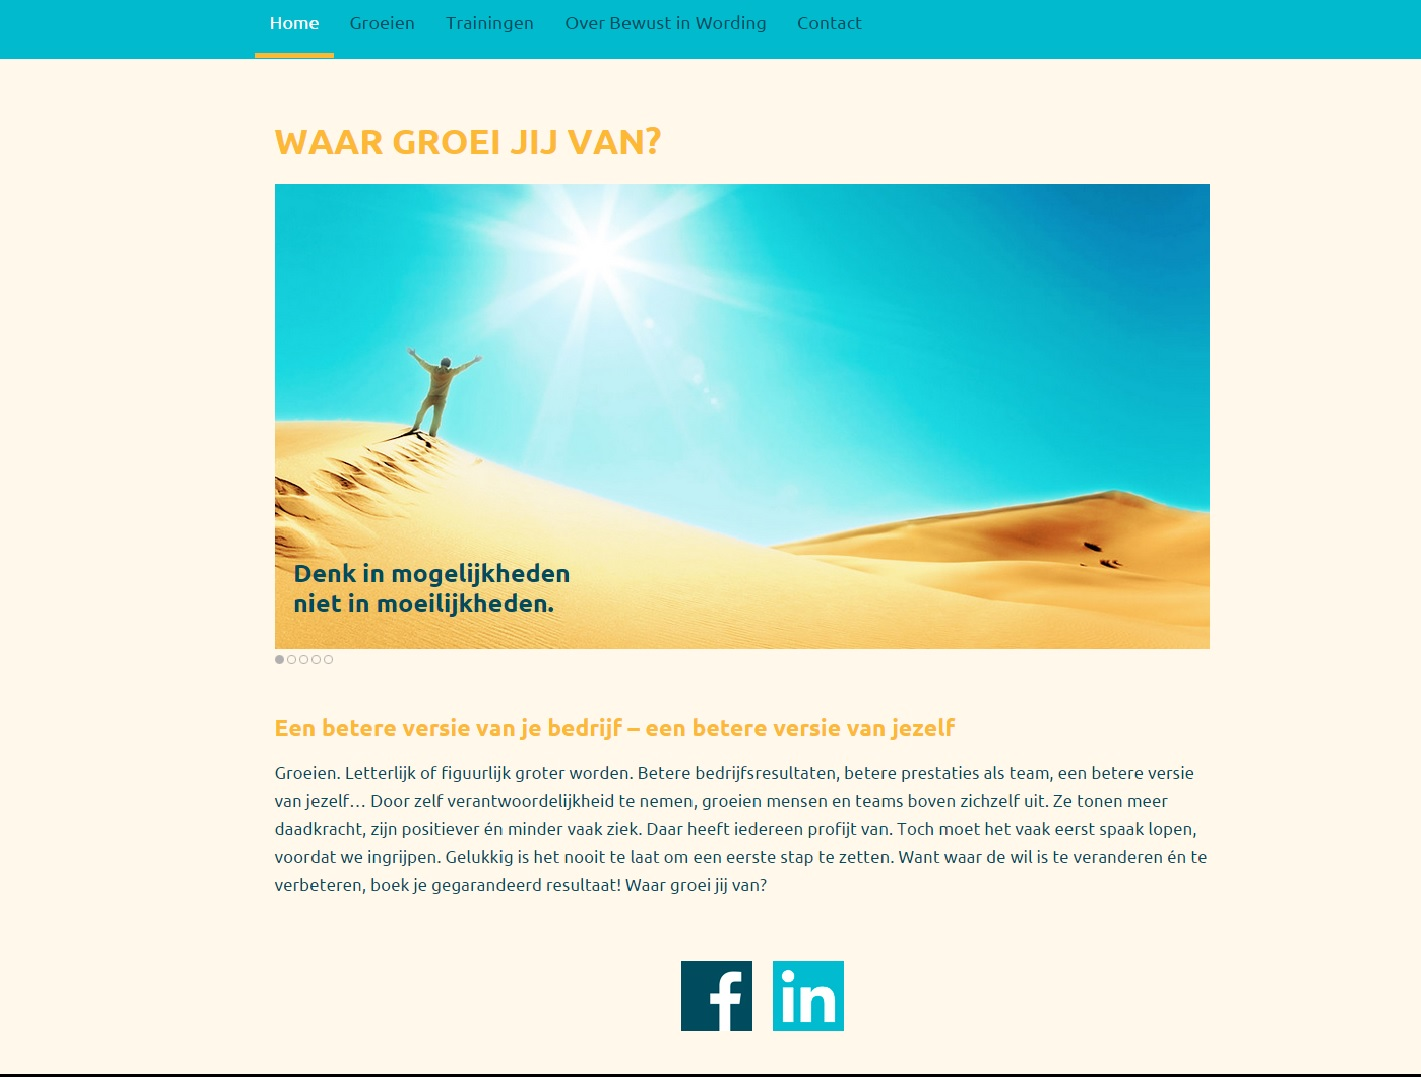 Website – Bewust in Wording